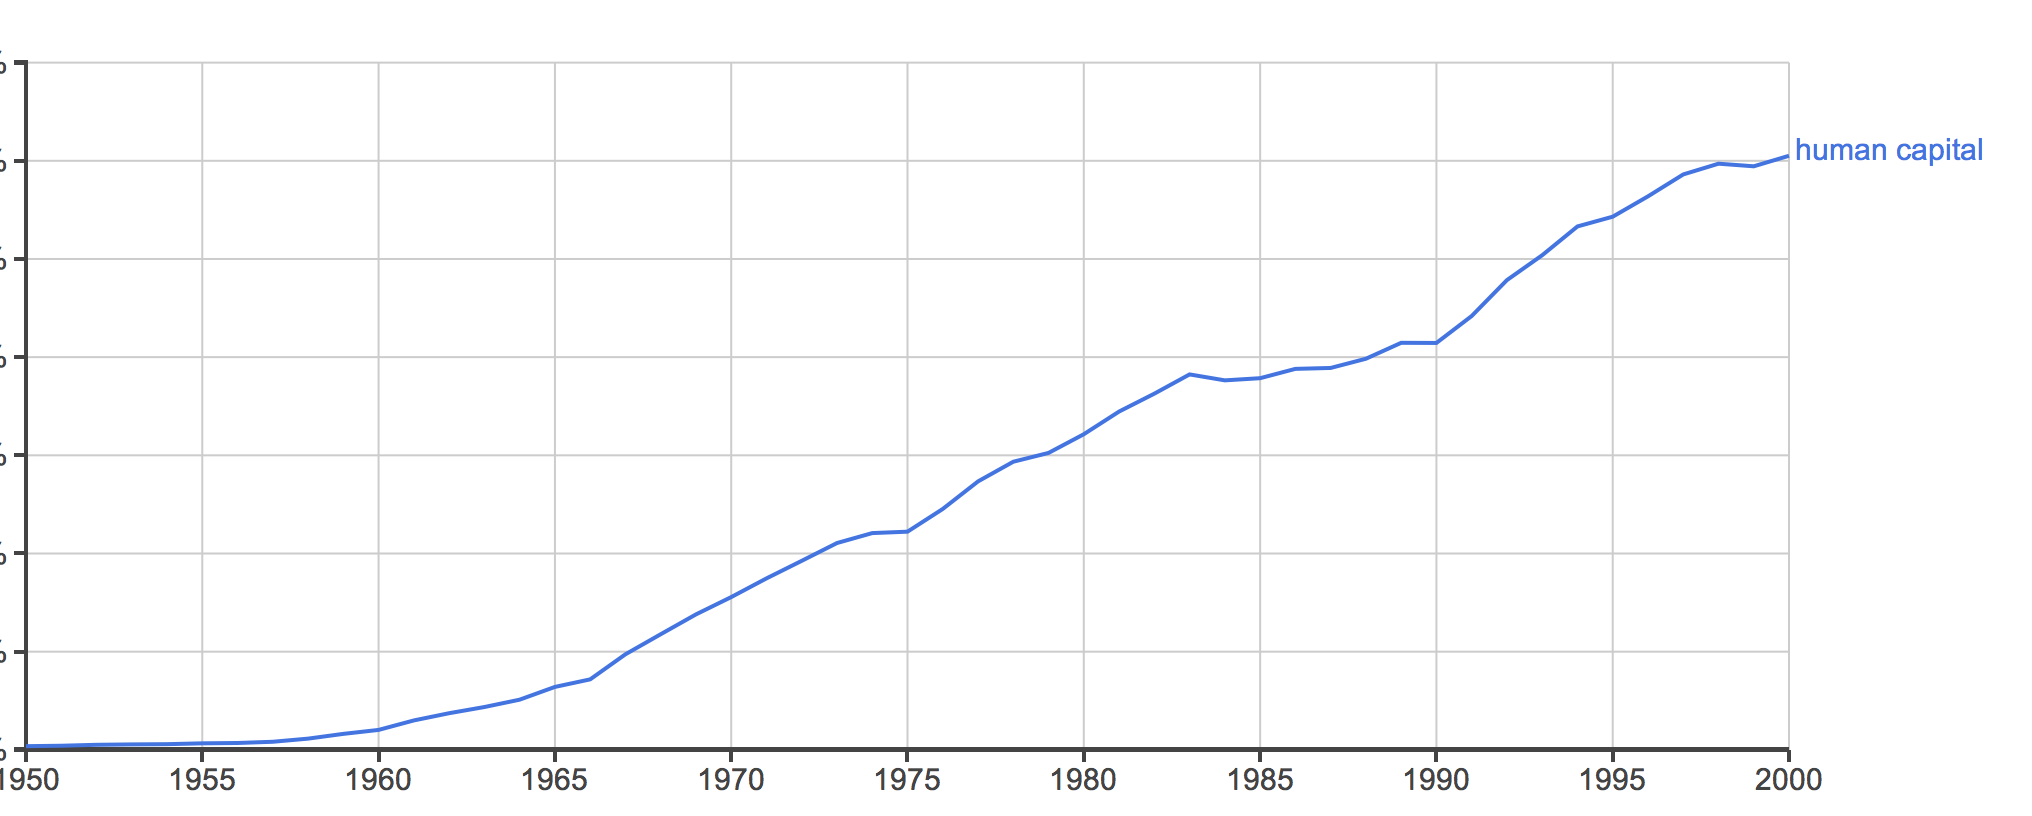 Human capital ngram 1950 to 2000